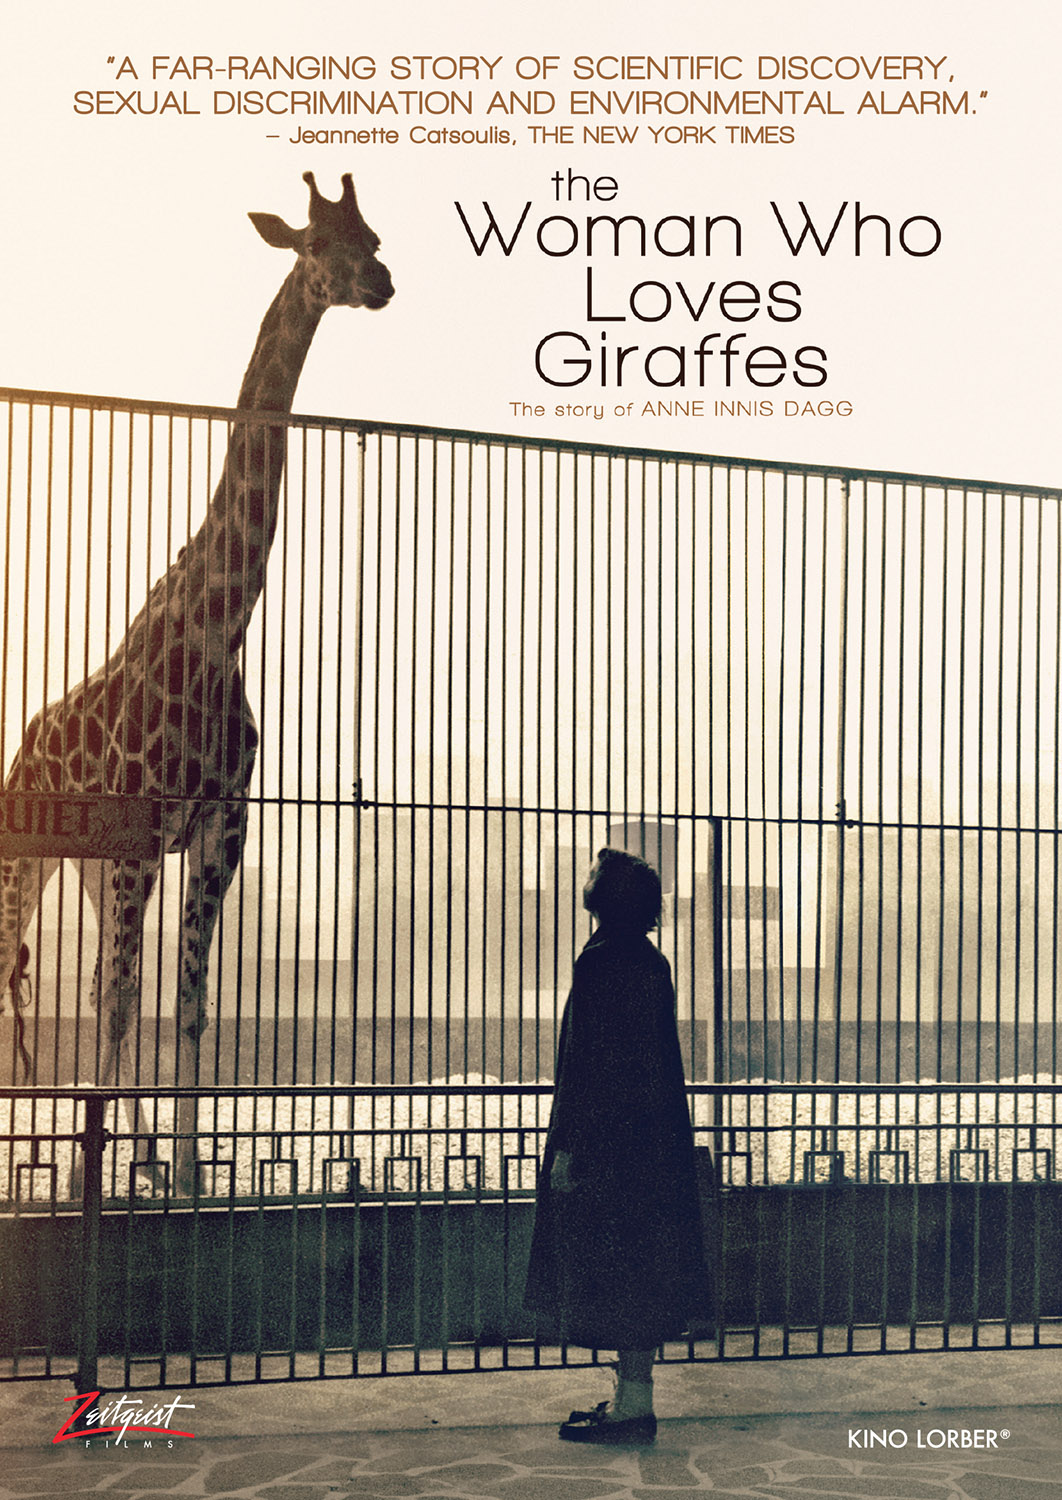 Poster for The Woman Who Loves Giraffes